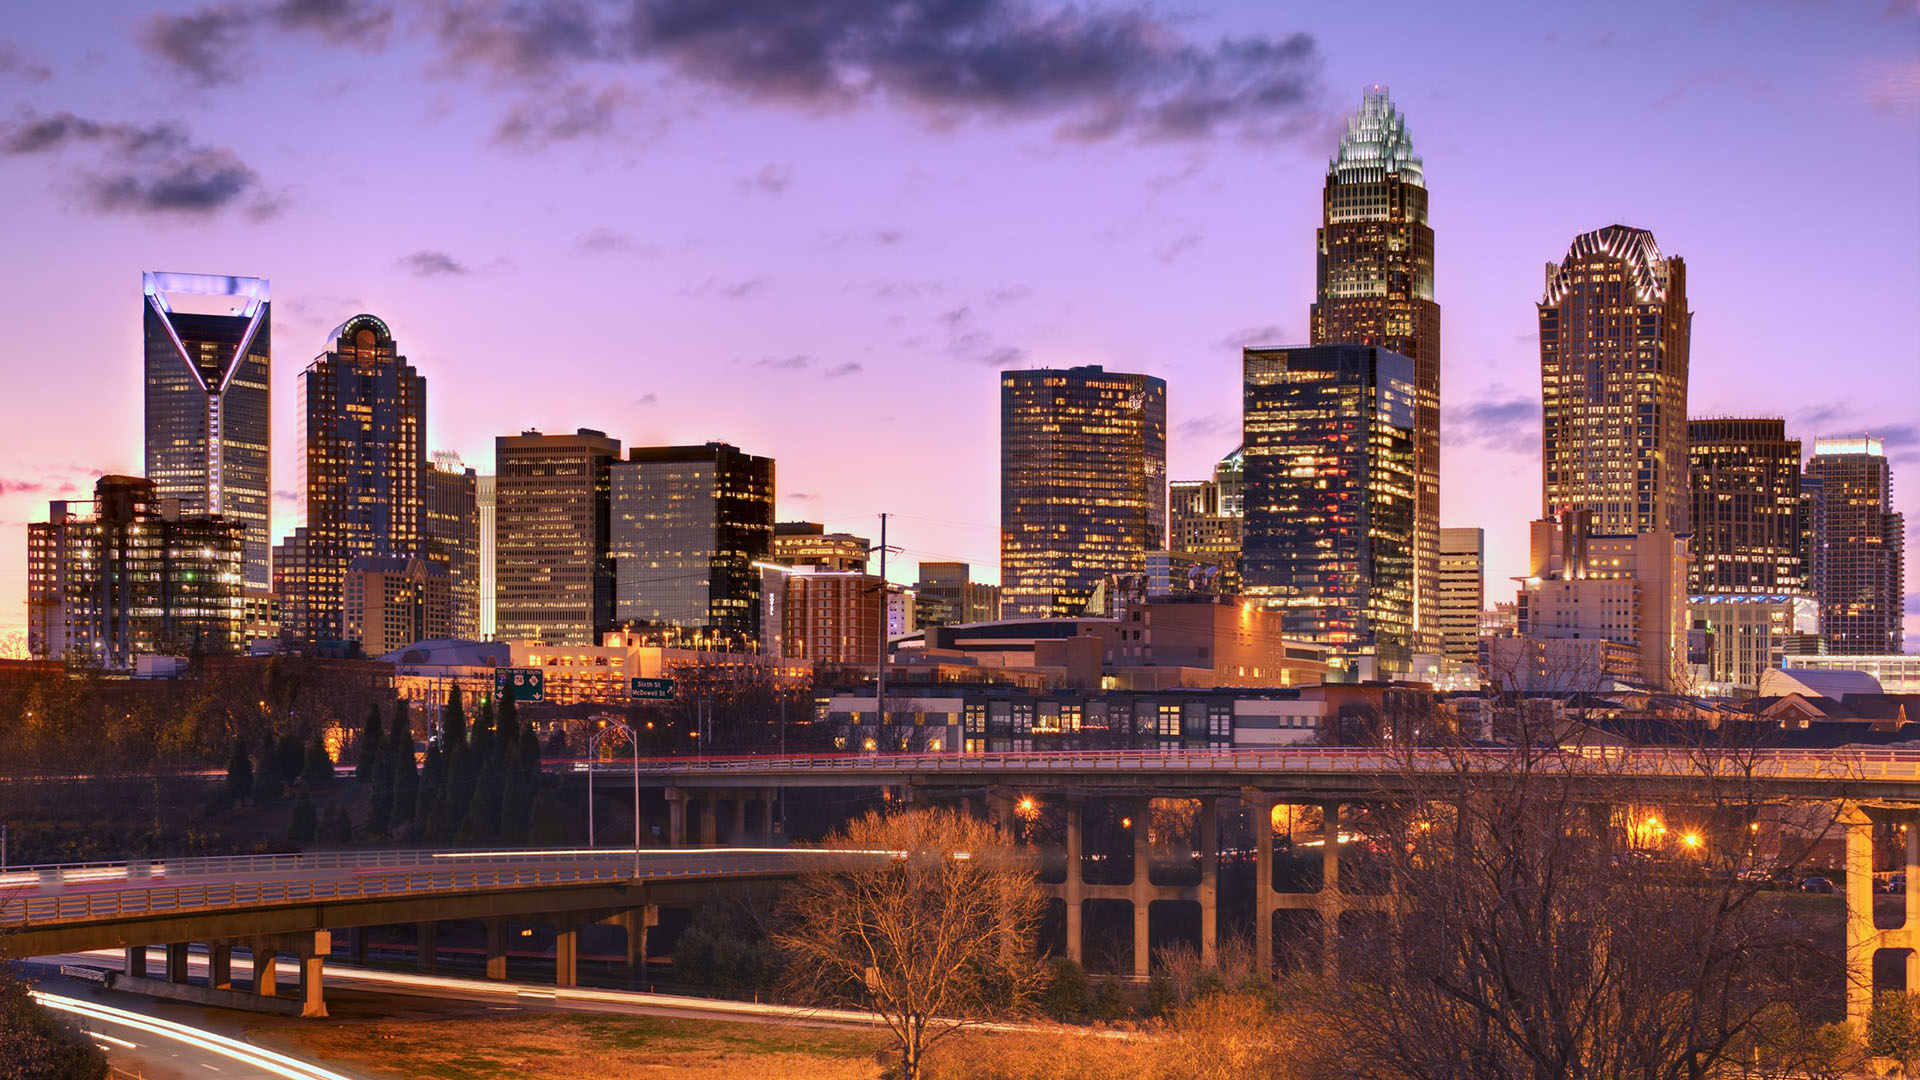 Wallpaper Hd For Mobile Free Download Animated Download Wallpaper Charlotte Nc Gallery